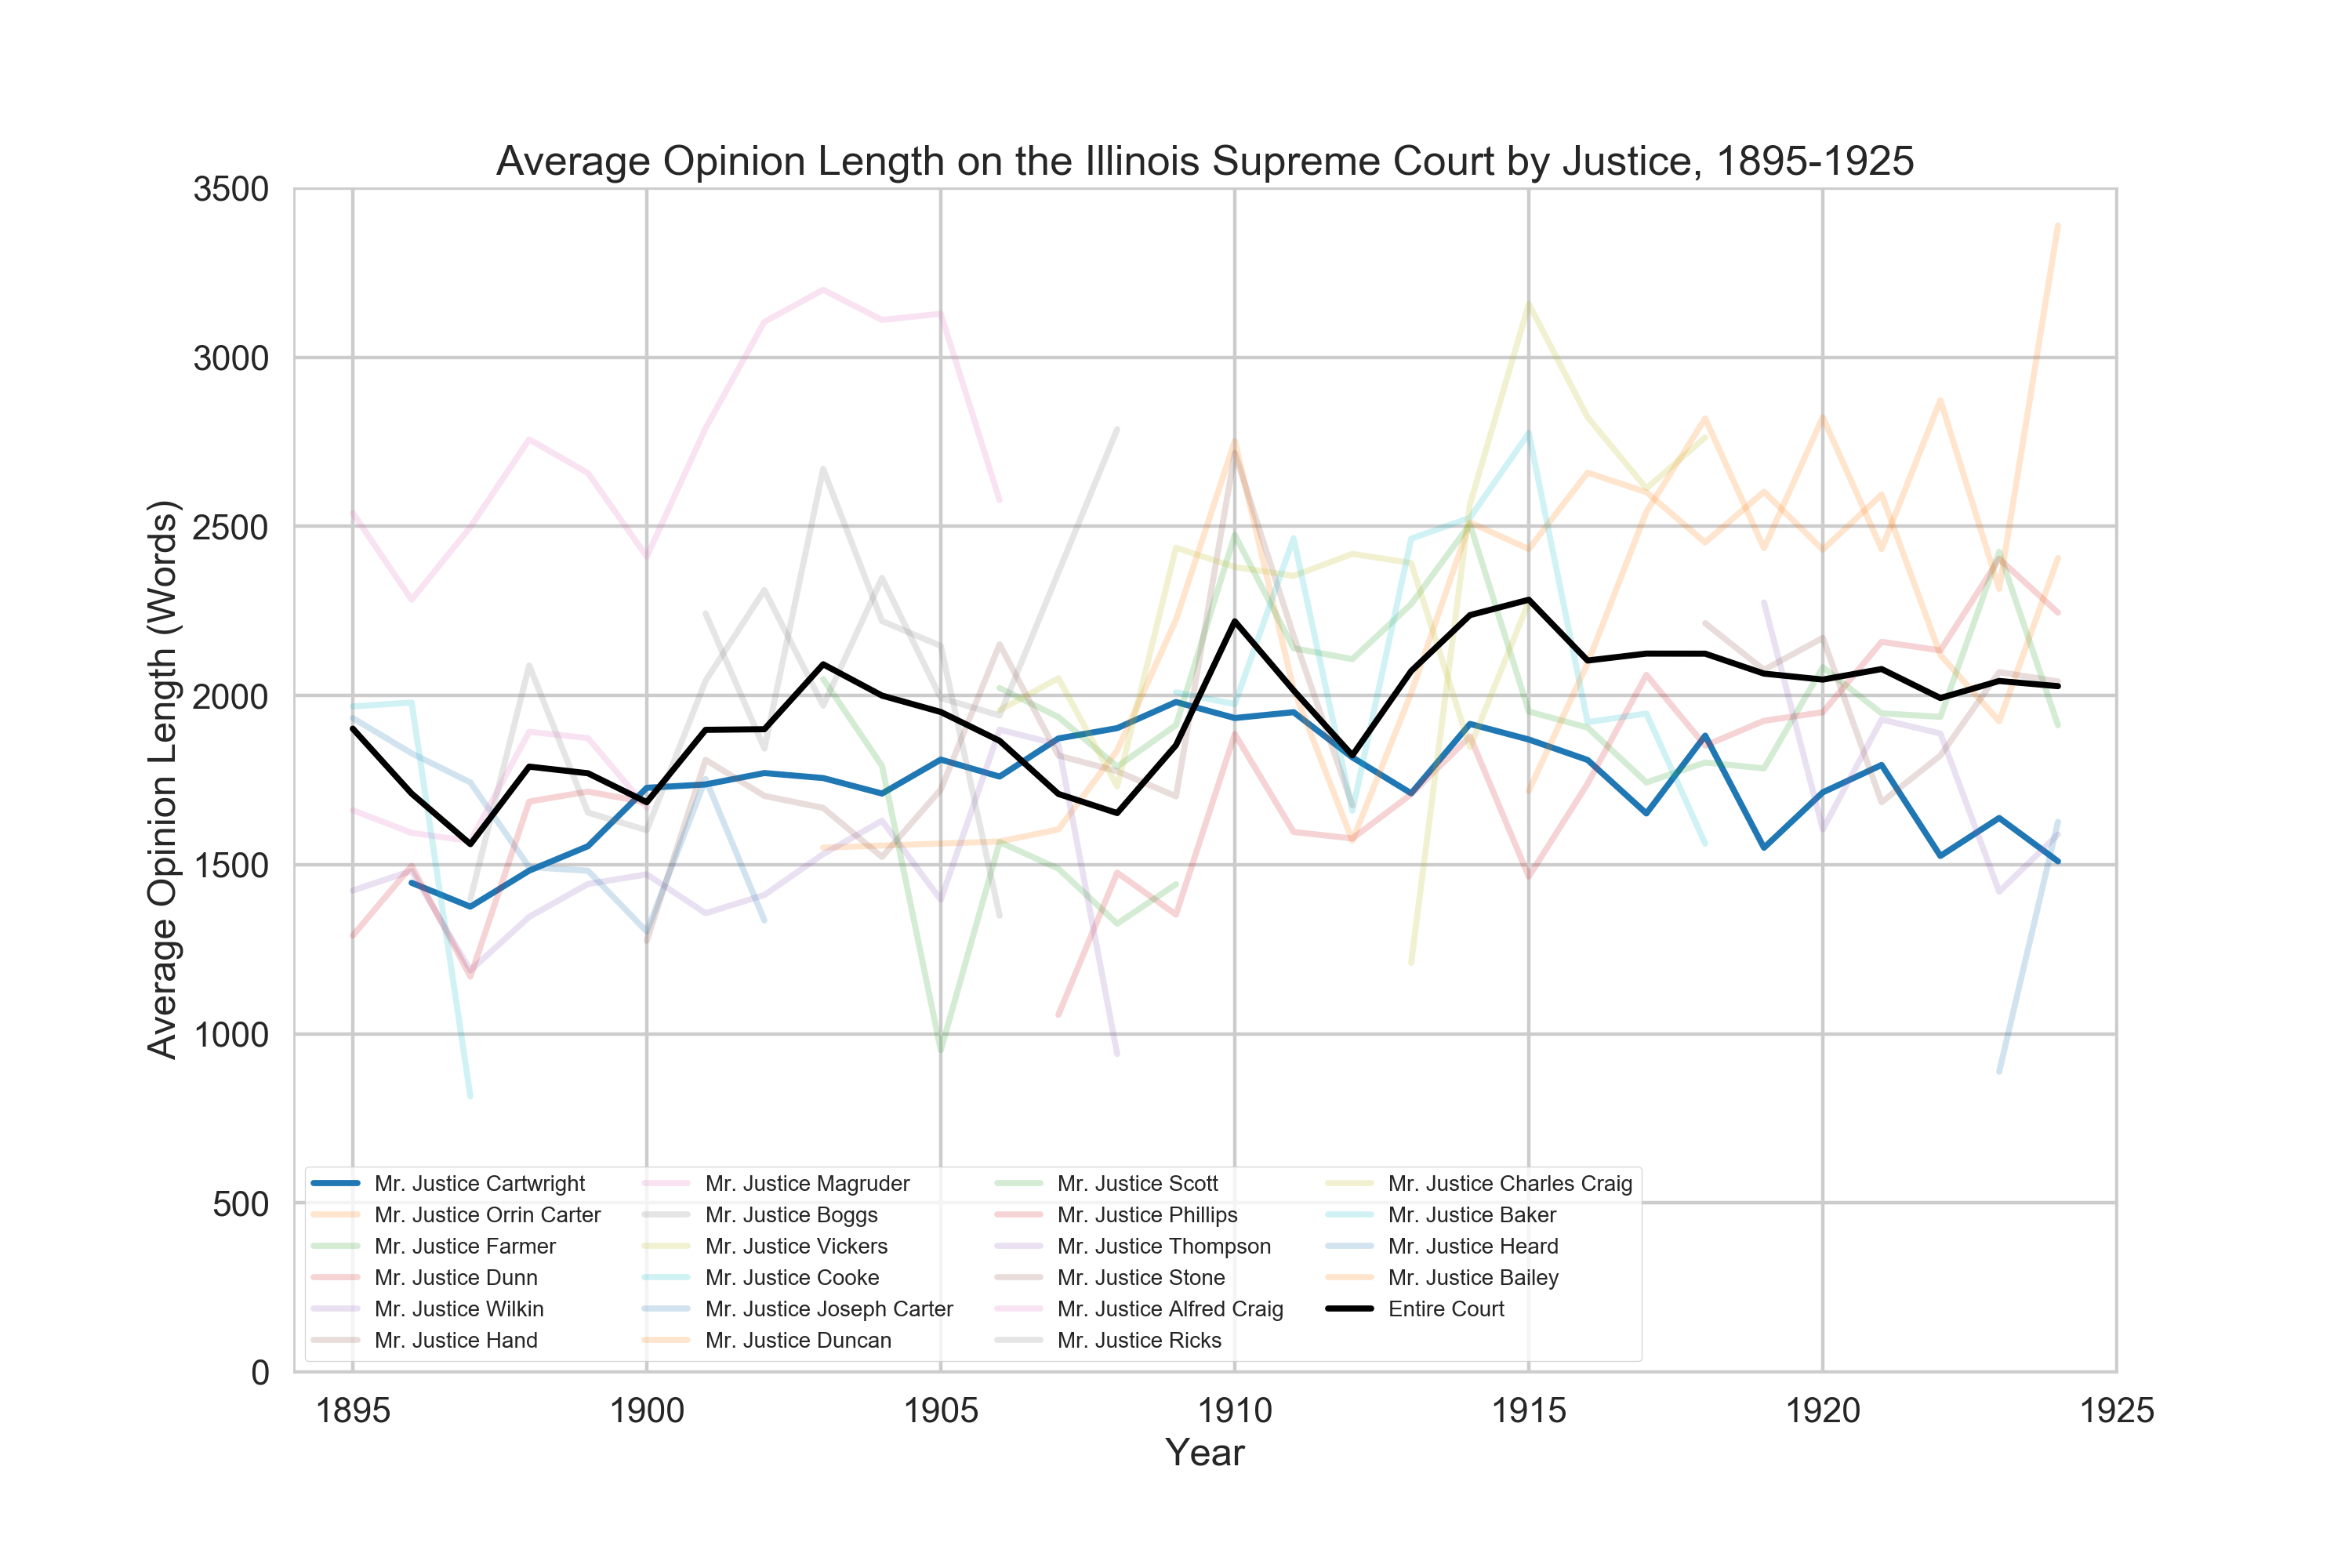 Cartwright's average opinion lengths relative to those of his peers